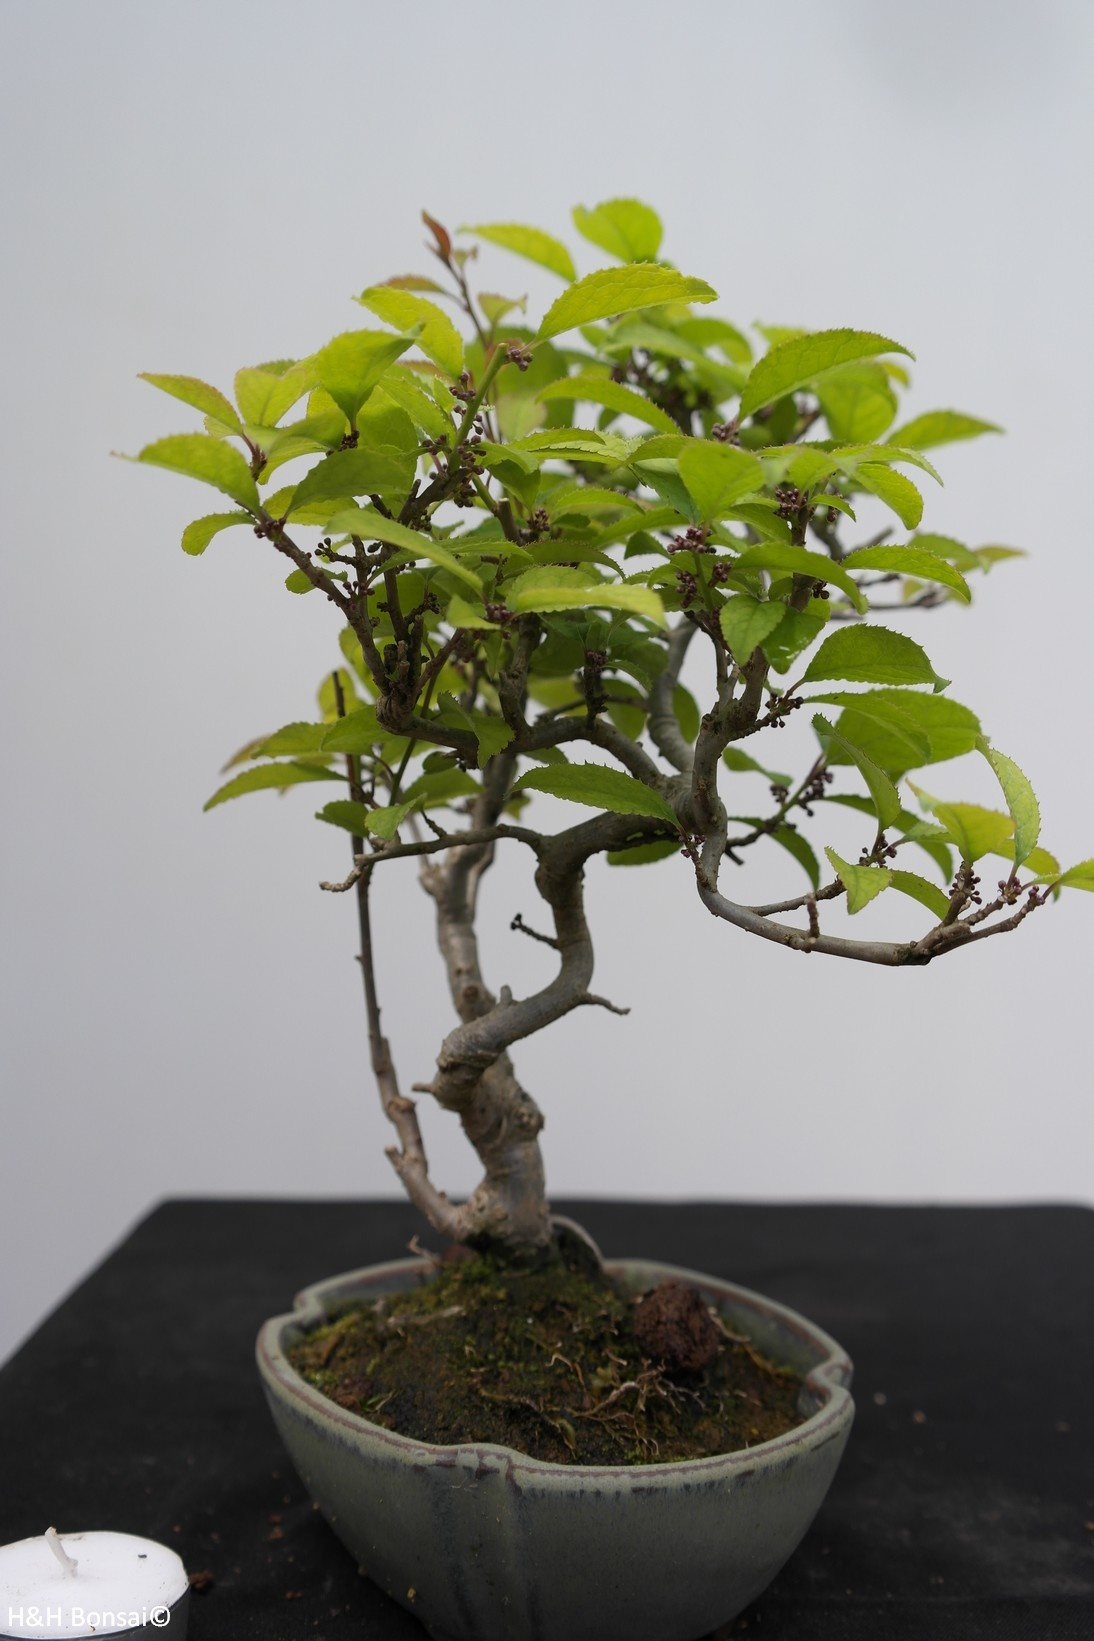 Bonsai Shohin Ilex serrata, no. 7789